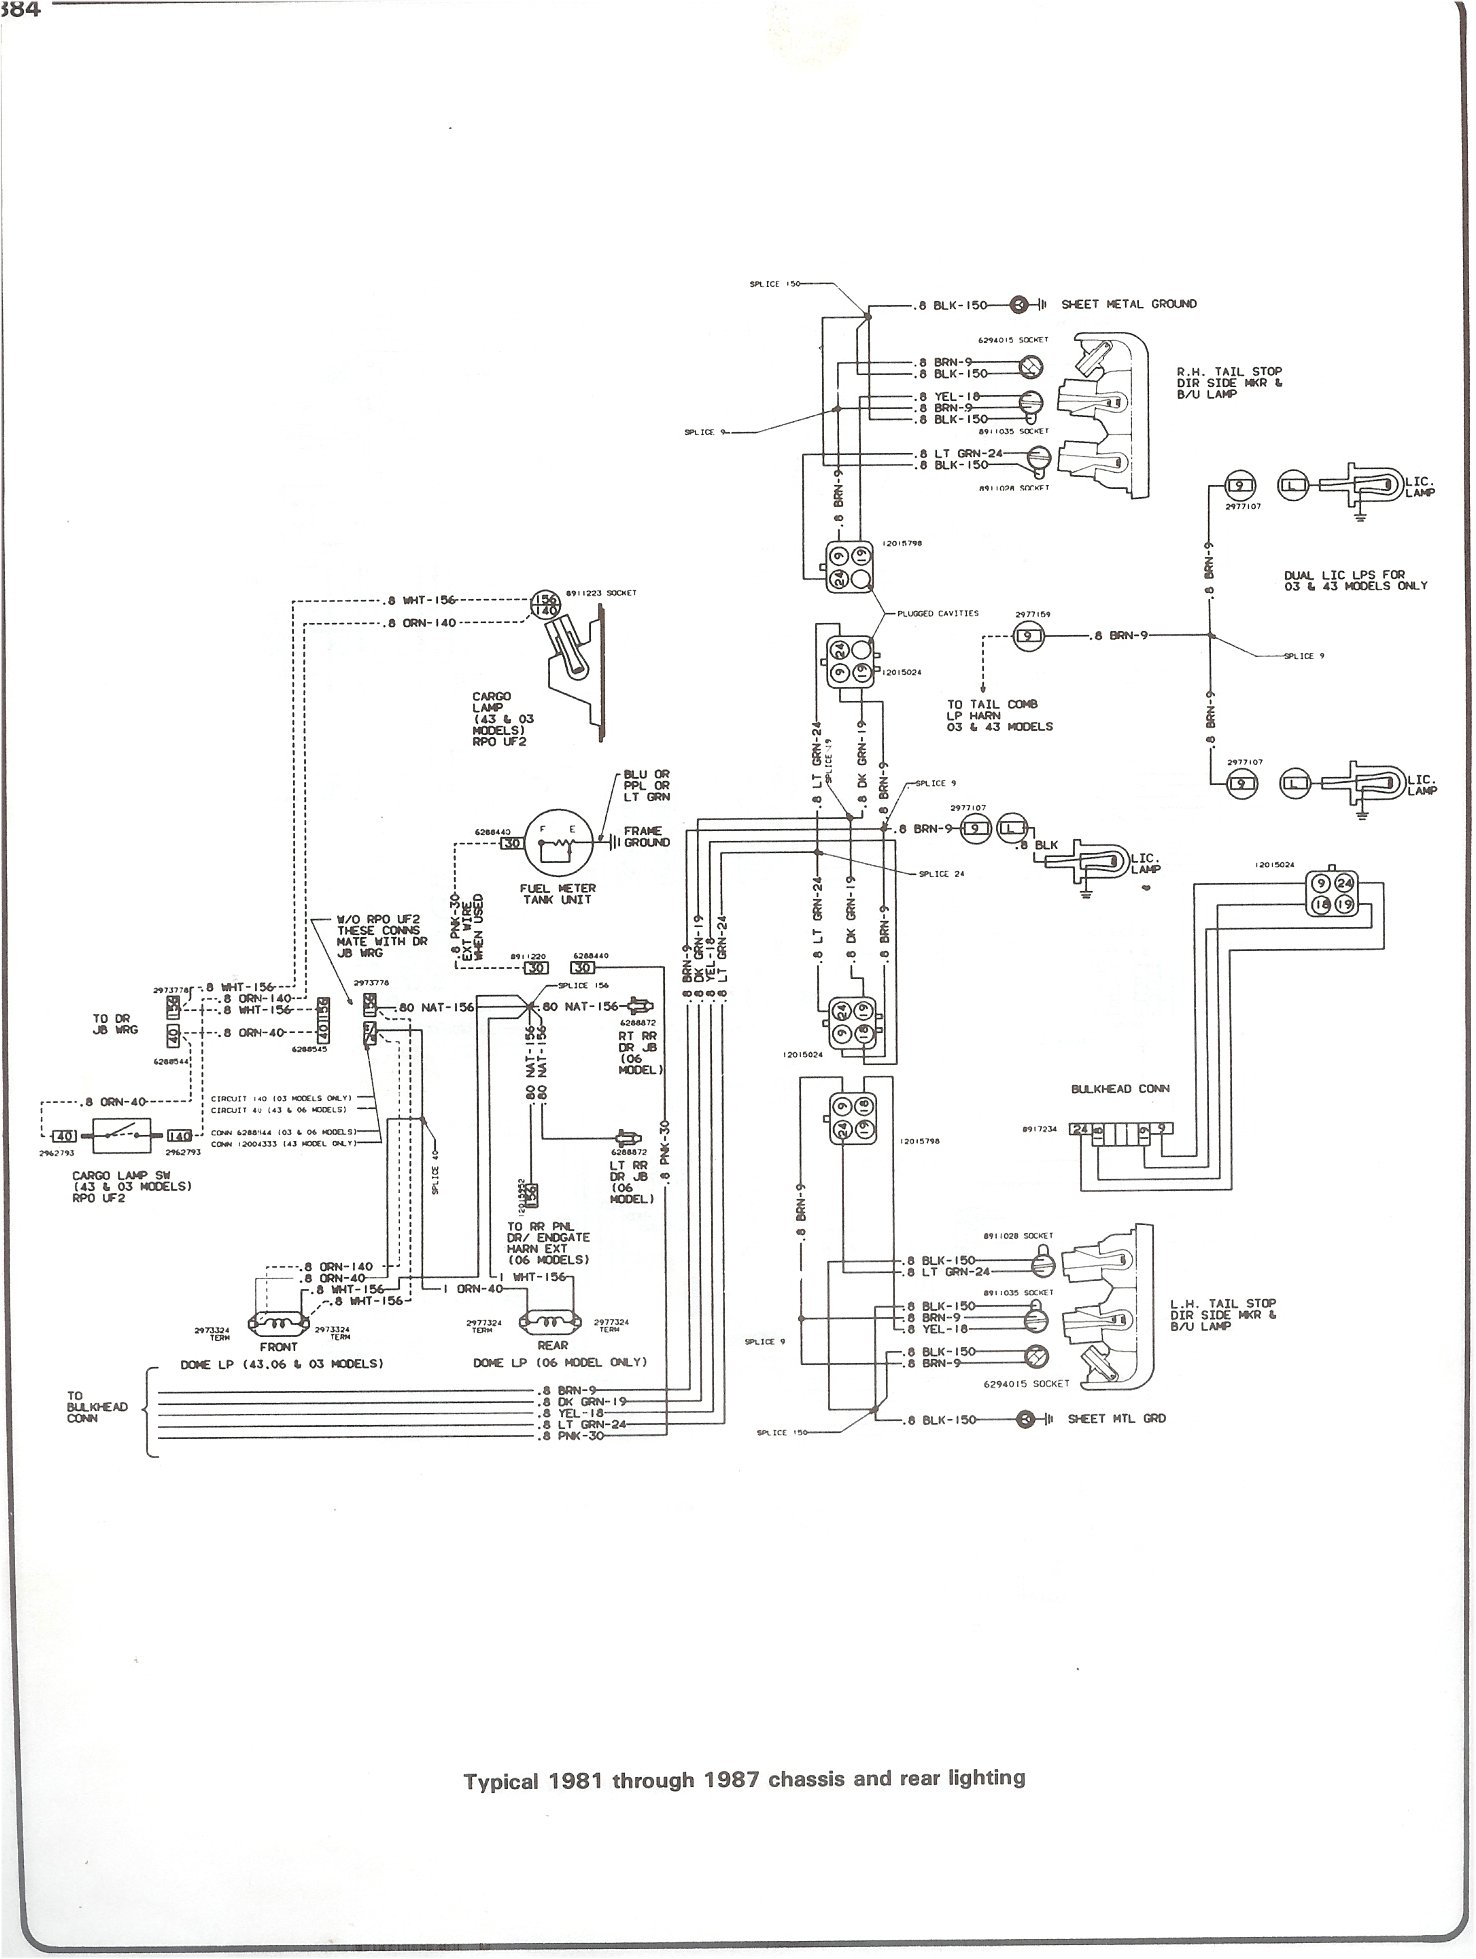 81 87_chass_rr_light complete 73 87 wiring diagrams 1978 Chevy C10 Wiring-Diagram at panicattacktreatment.co